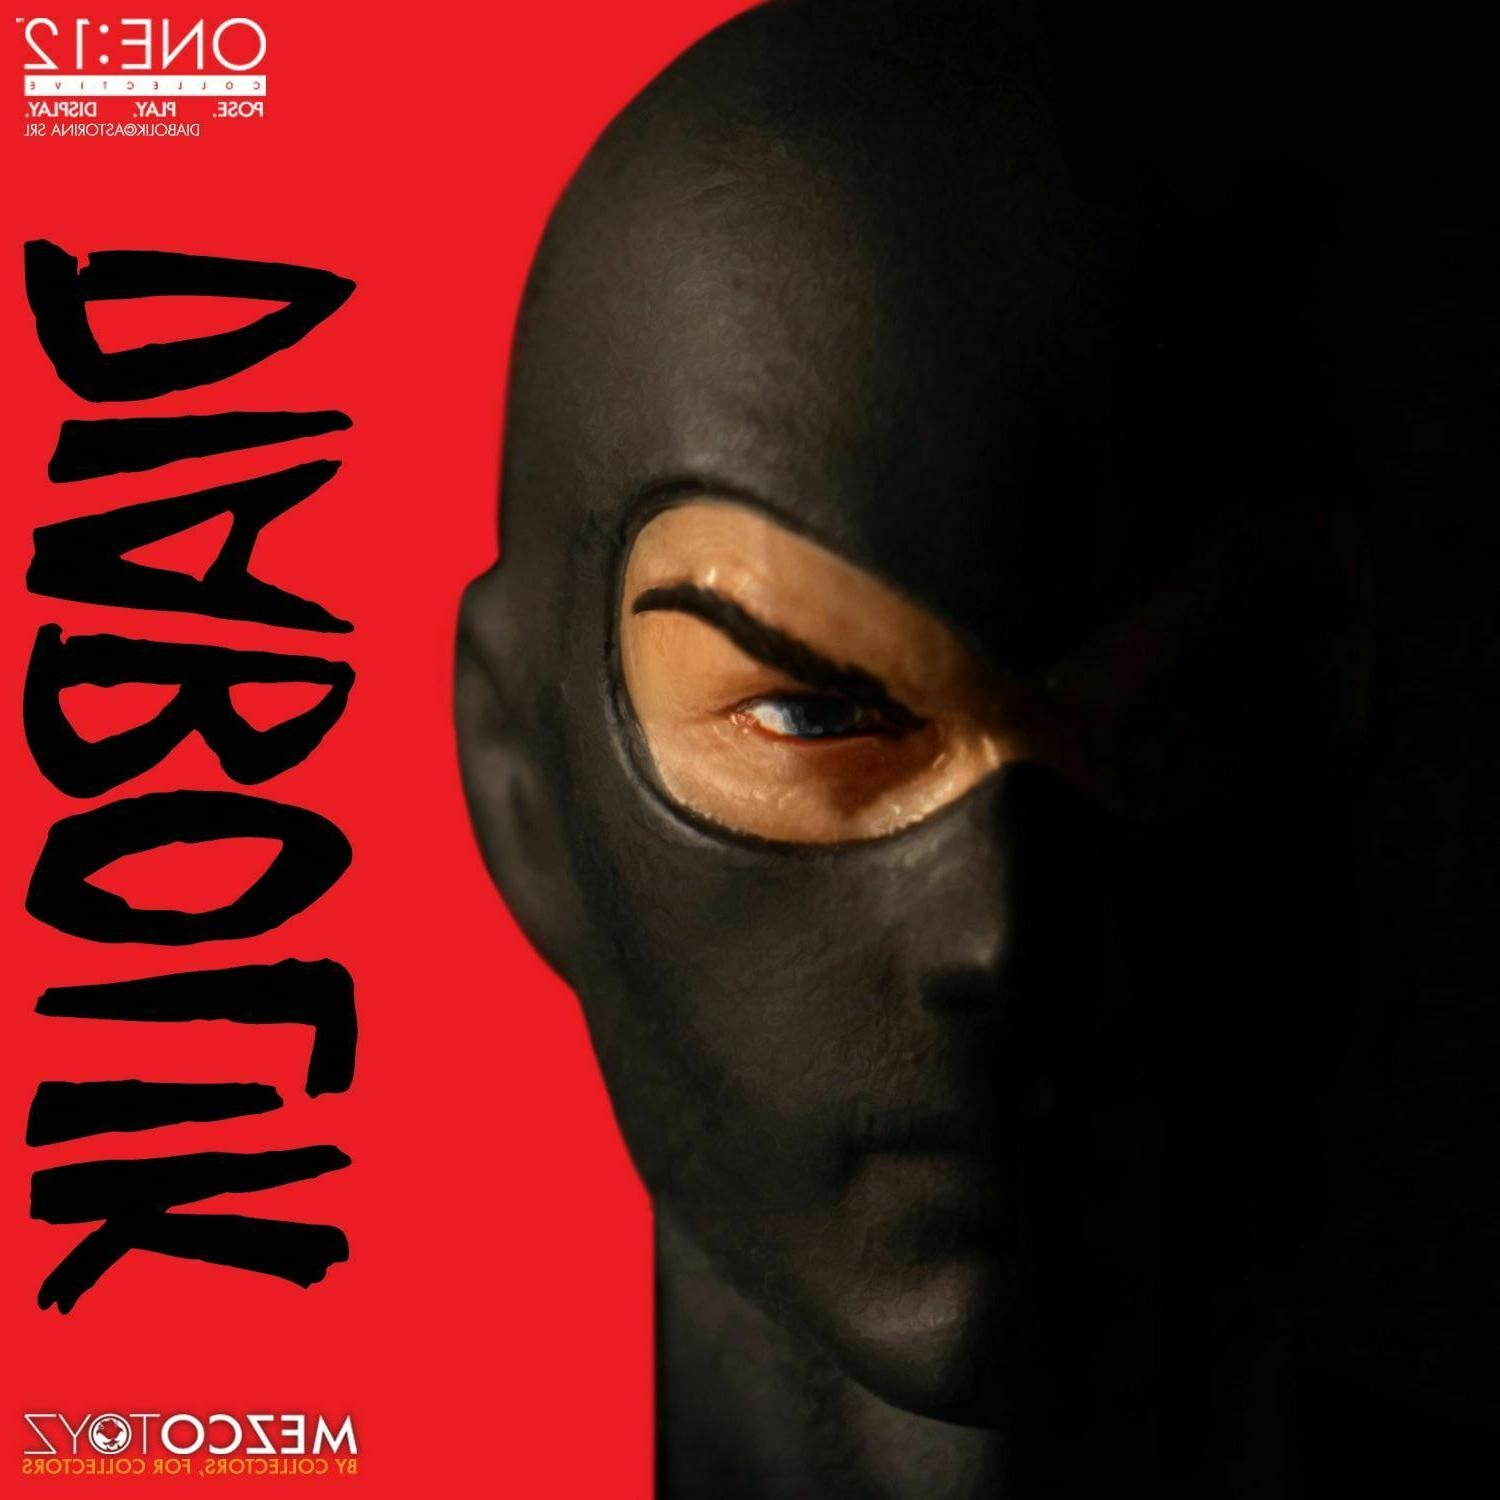 Mezco One:12 Collective Diabolik Action Figure IN